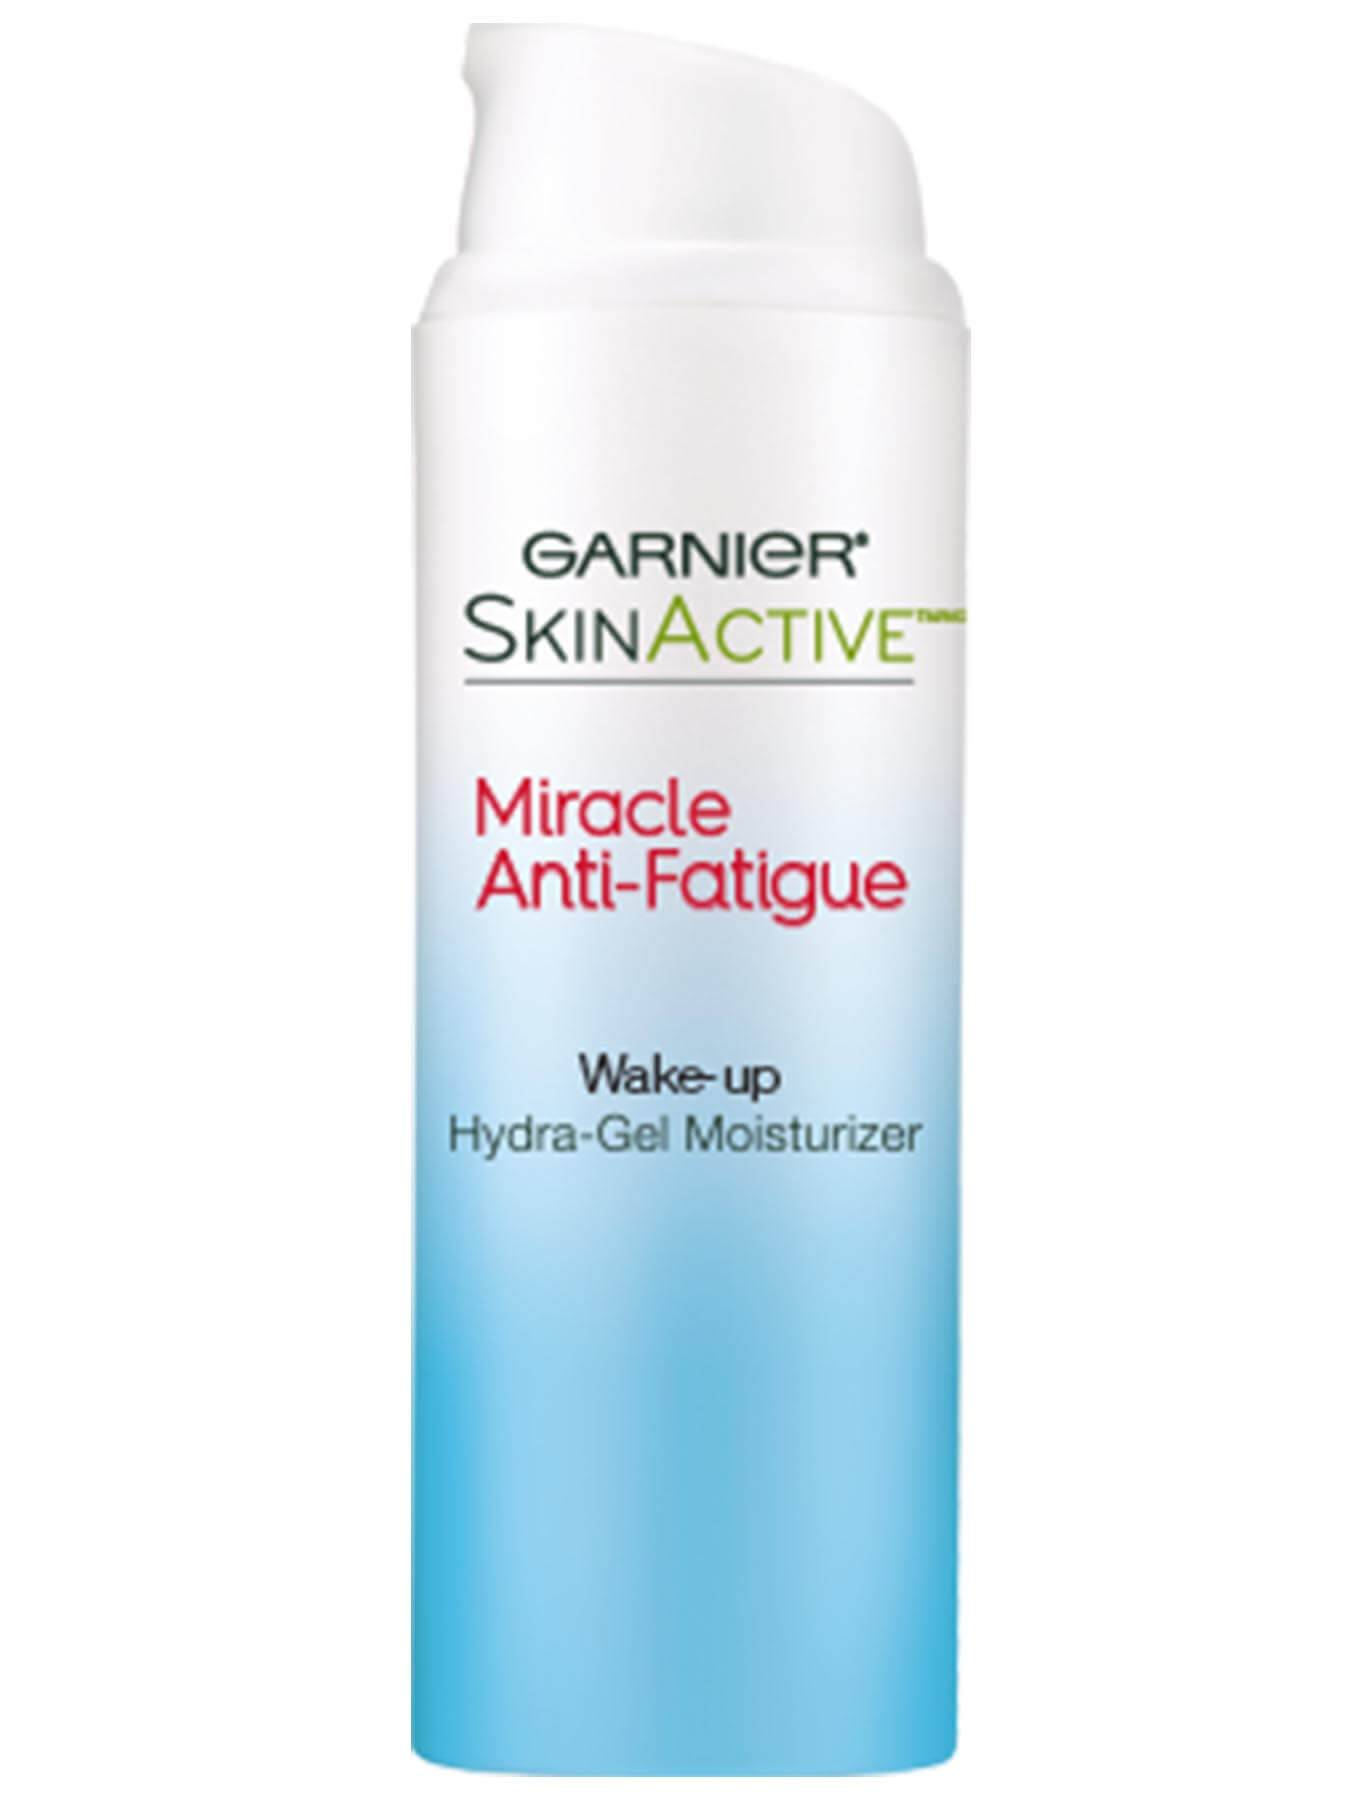 Garnier - Miracle Anti-Fatigue Hydra-Gel Moisturizer